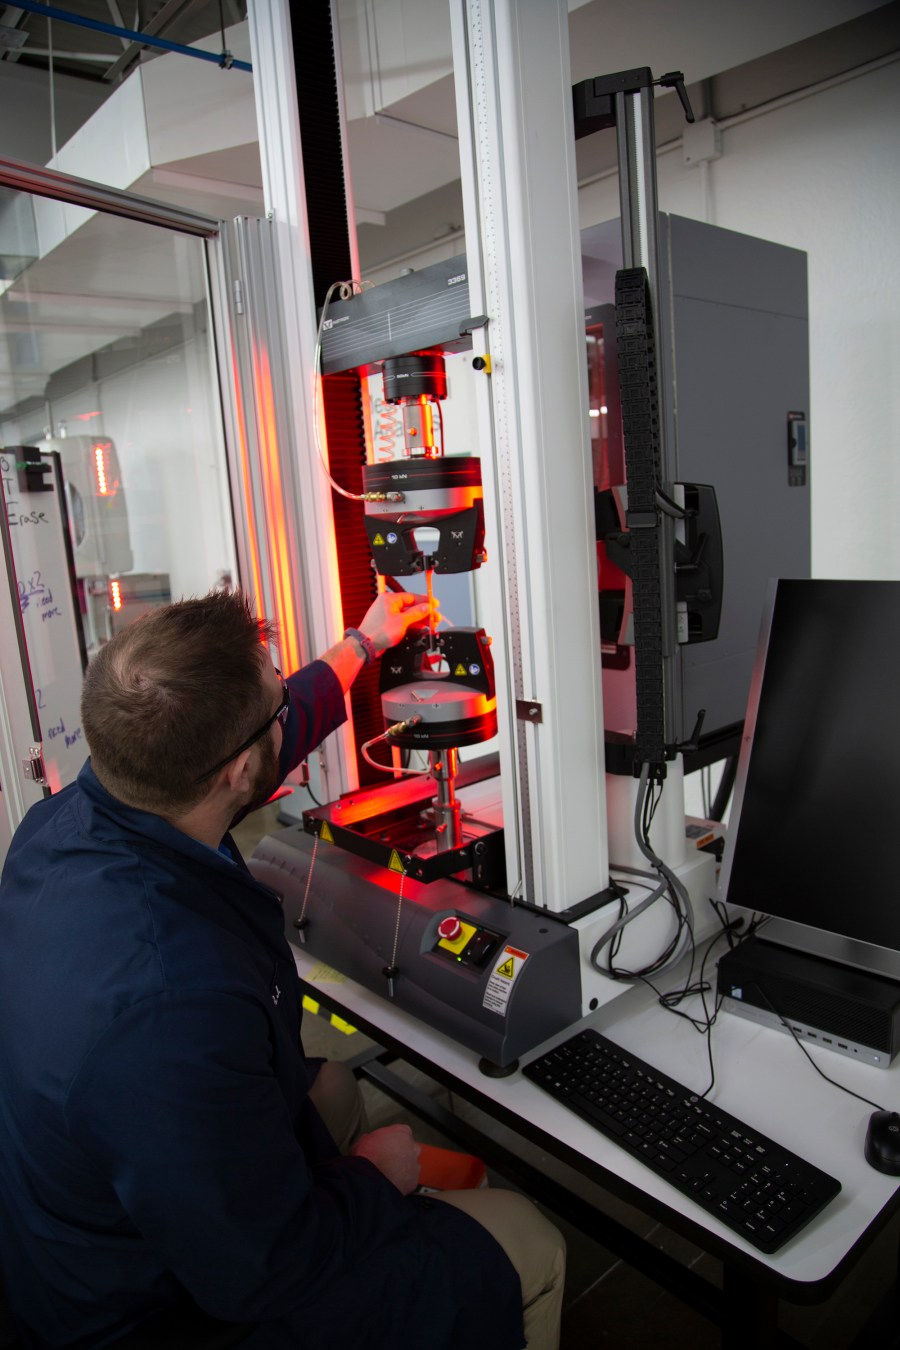 Strength Testing: Each engineered material undergoes rigorous strength testing to validate durability and performance for a variety of applications. Photo via Jabil.